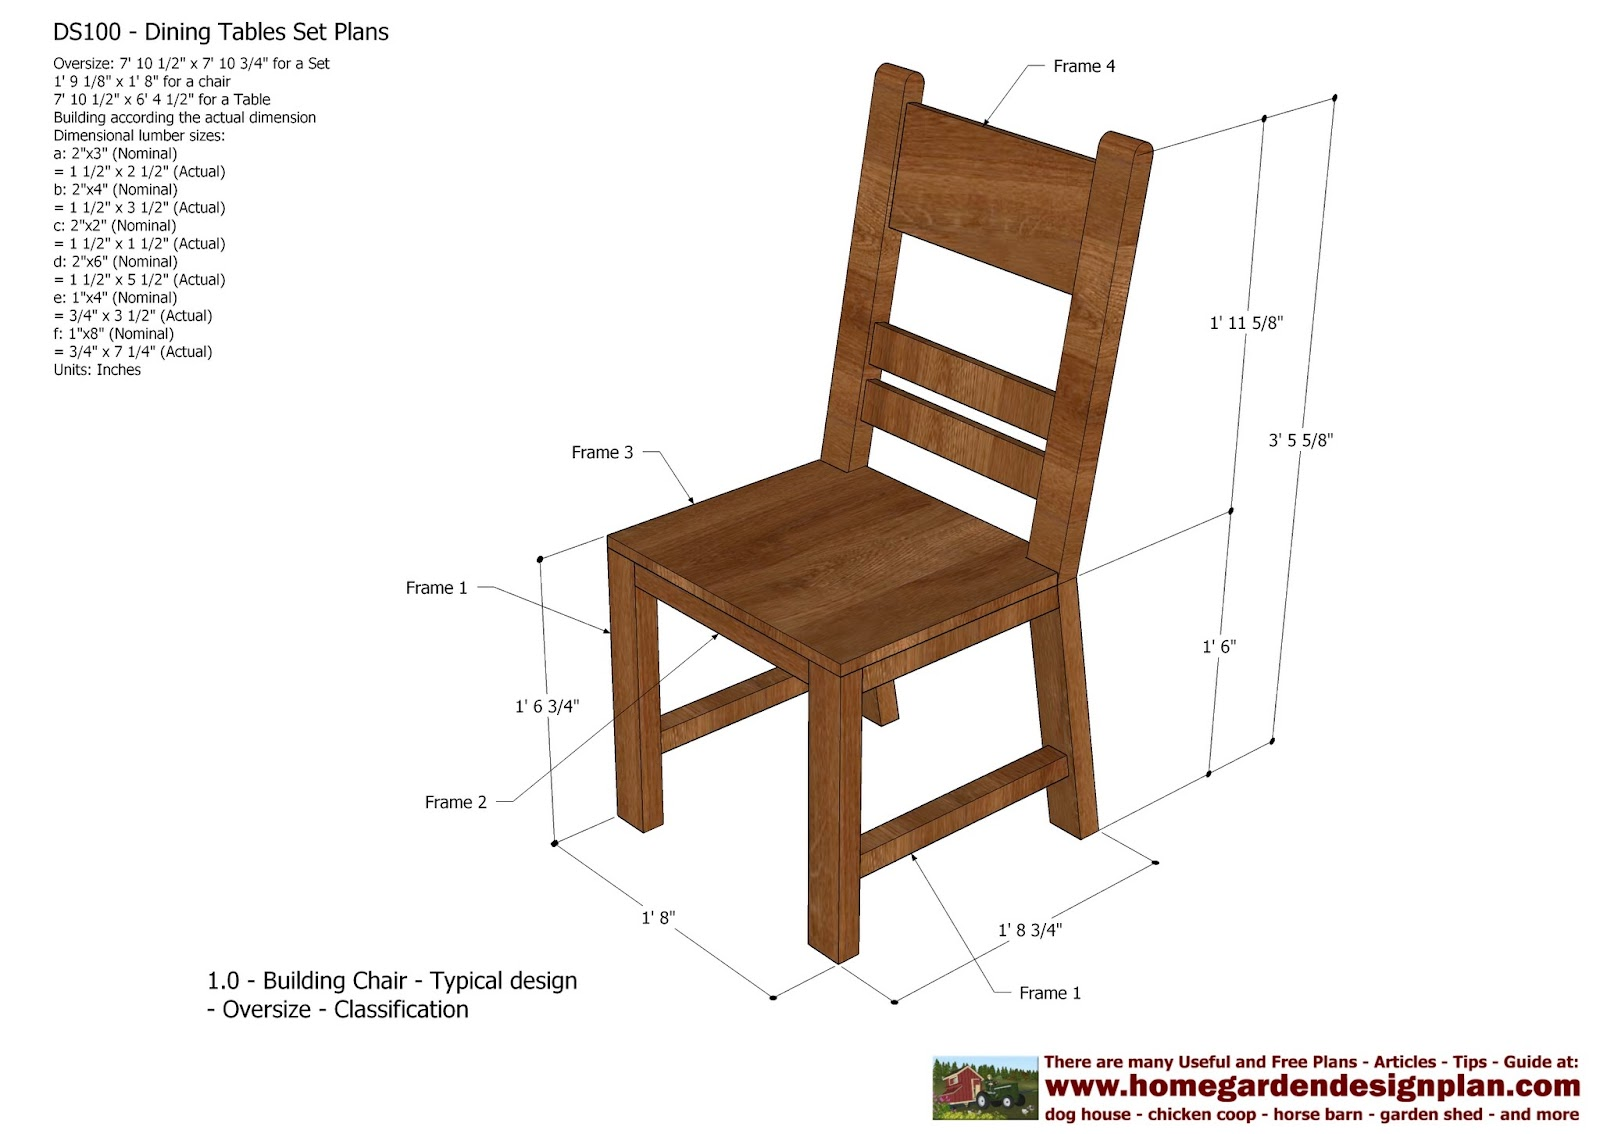 ... Dining Table Set Plans - Woodworking Plans - Outdoor Furniture Plans